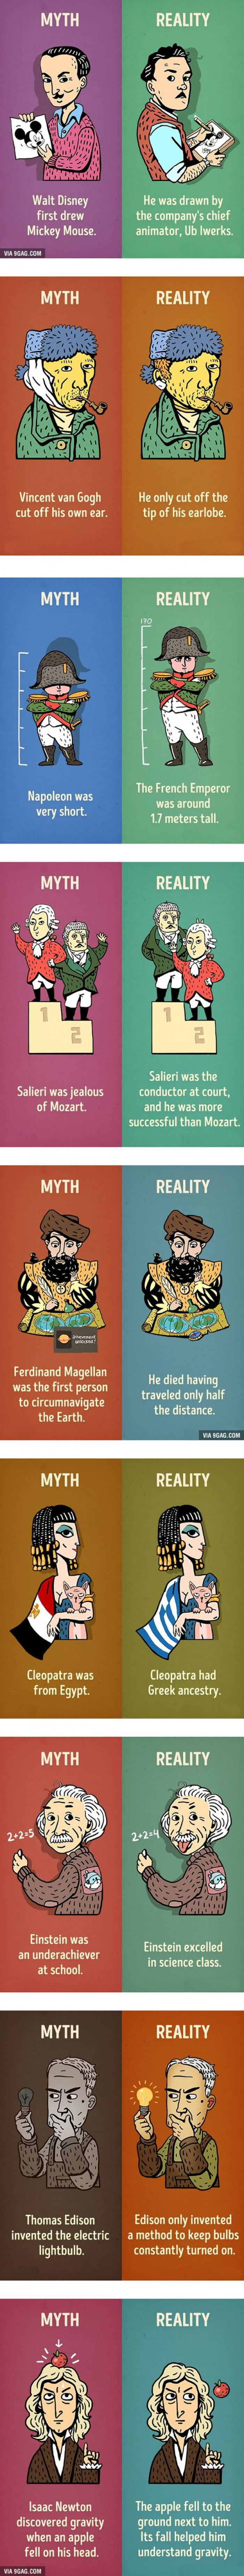 9 Historical Myths We Need To Stop Believing Right Now